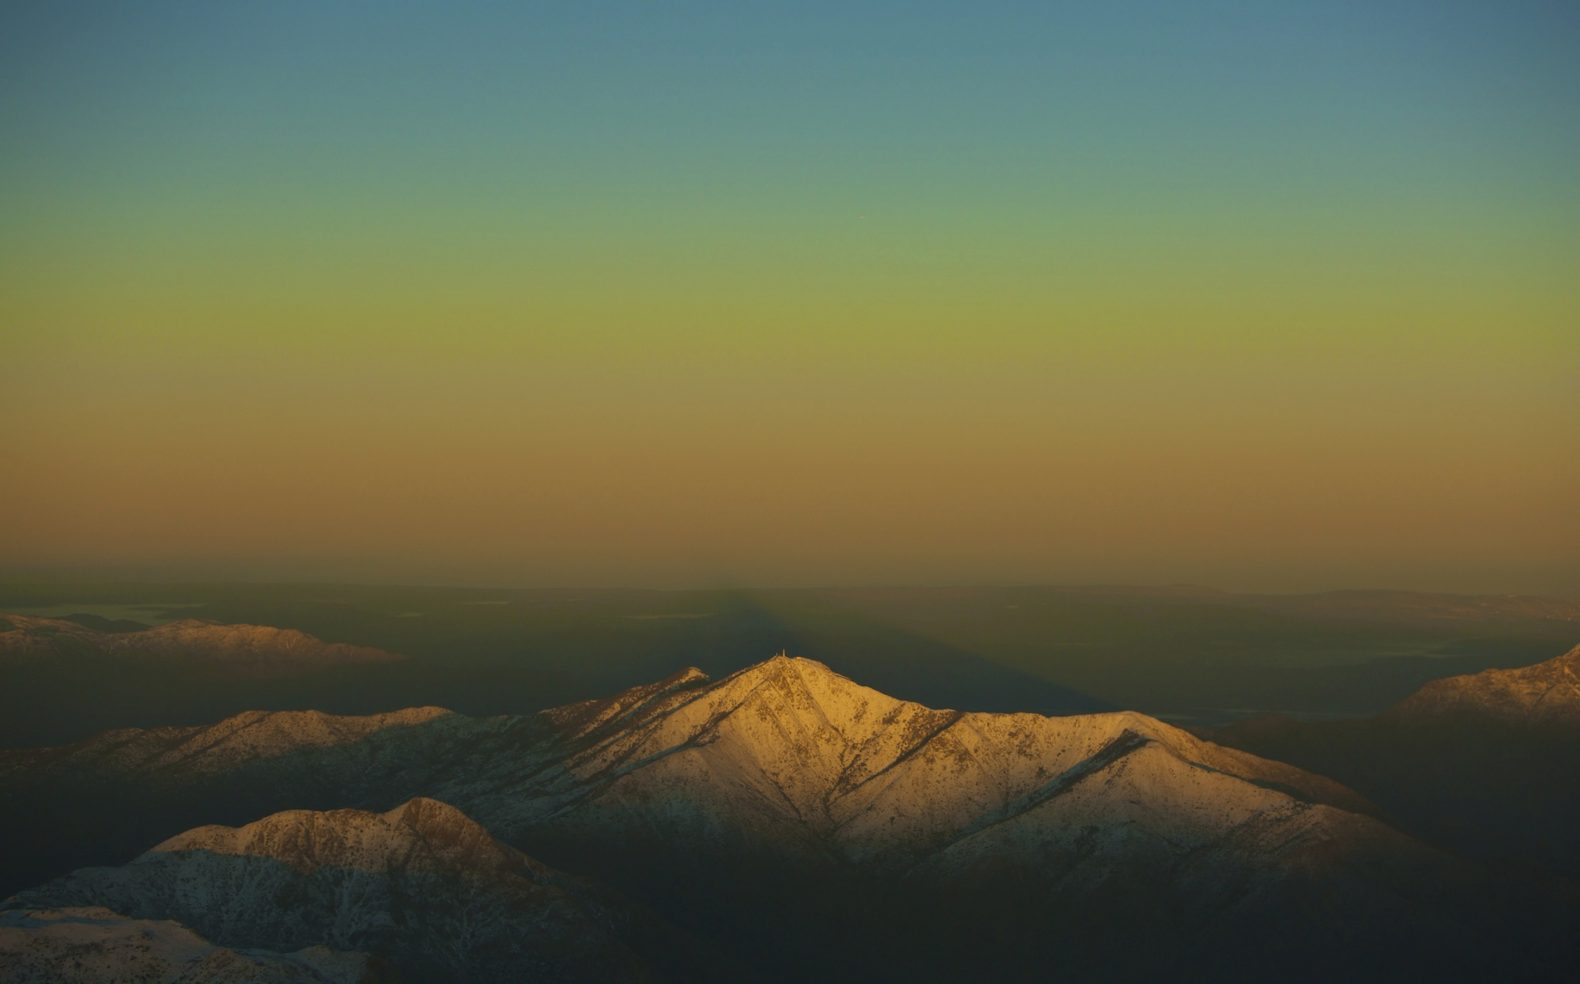 An aerial view of an alpine mountain landscape during dusk through a sky of subtle blue and orange hues.